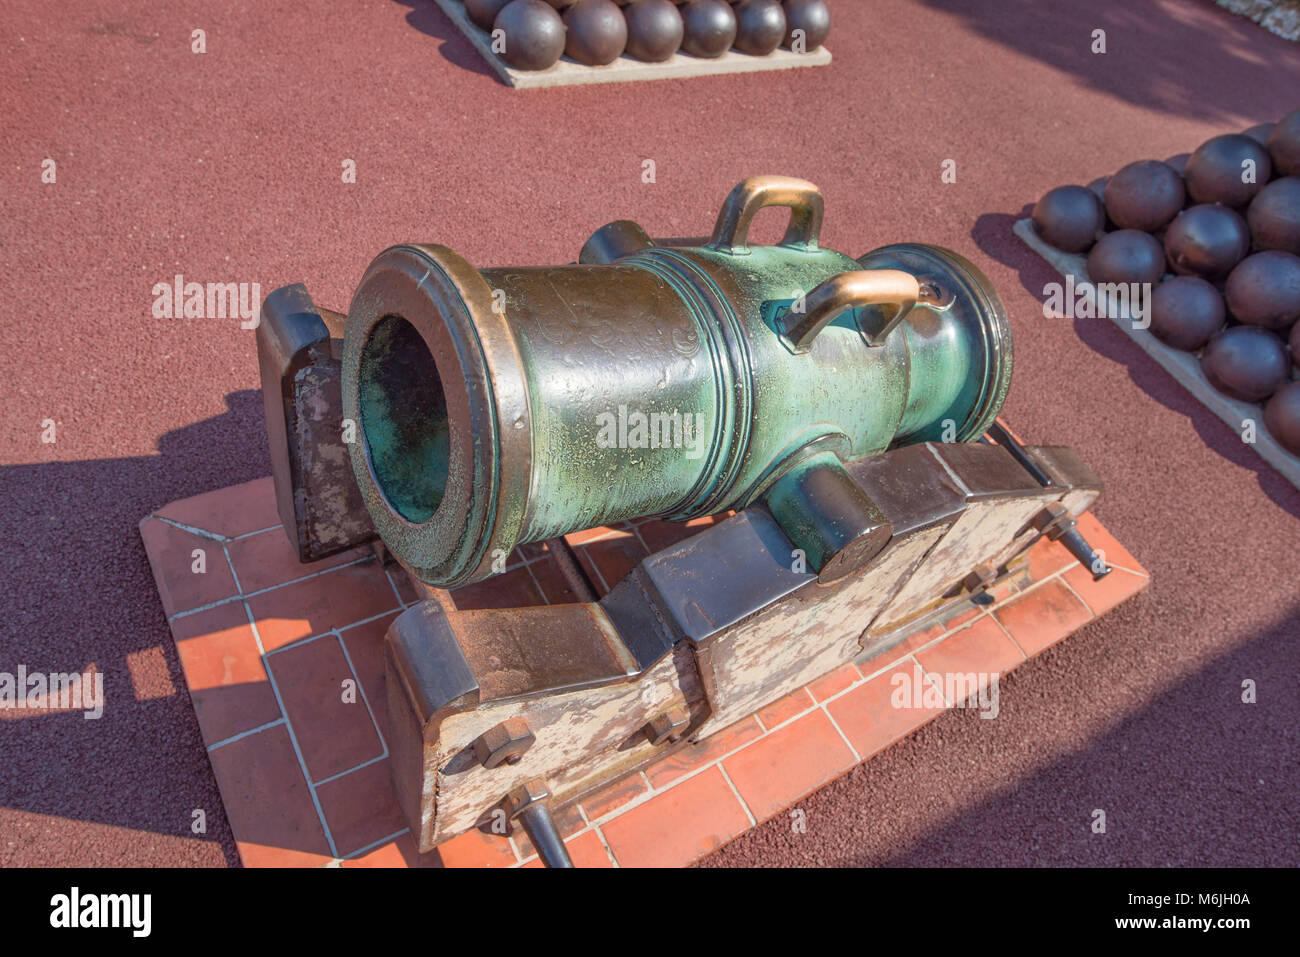 An ancient fortress cannon with cores near the princely palace in Monaco. - Stock Image